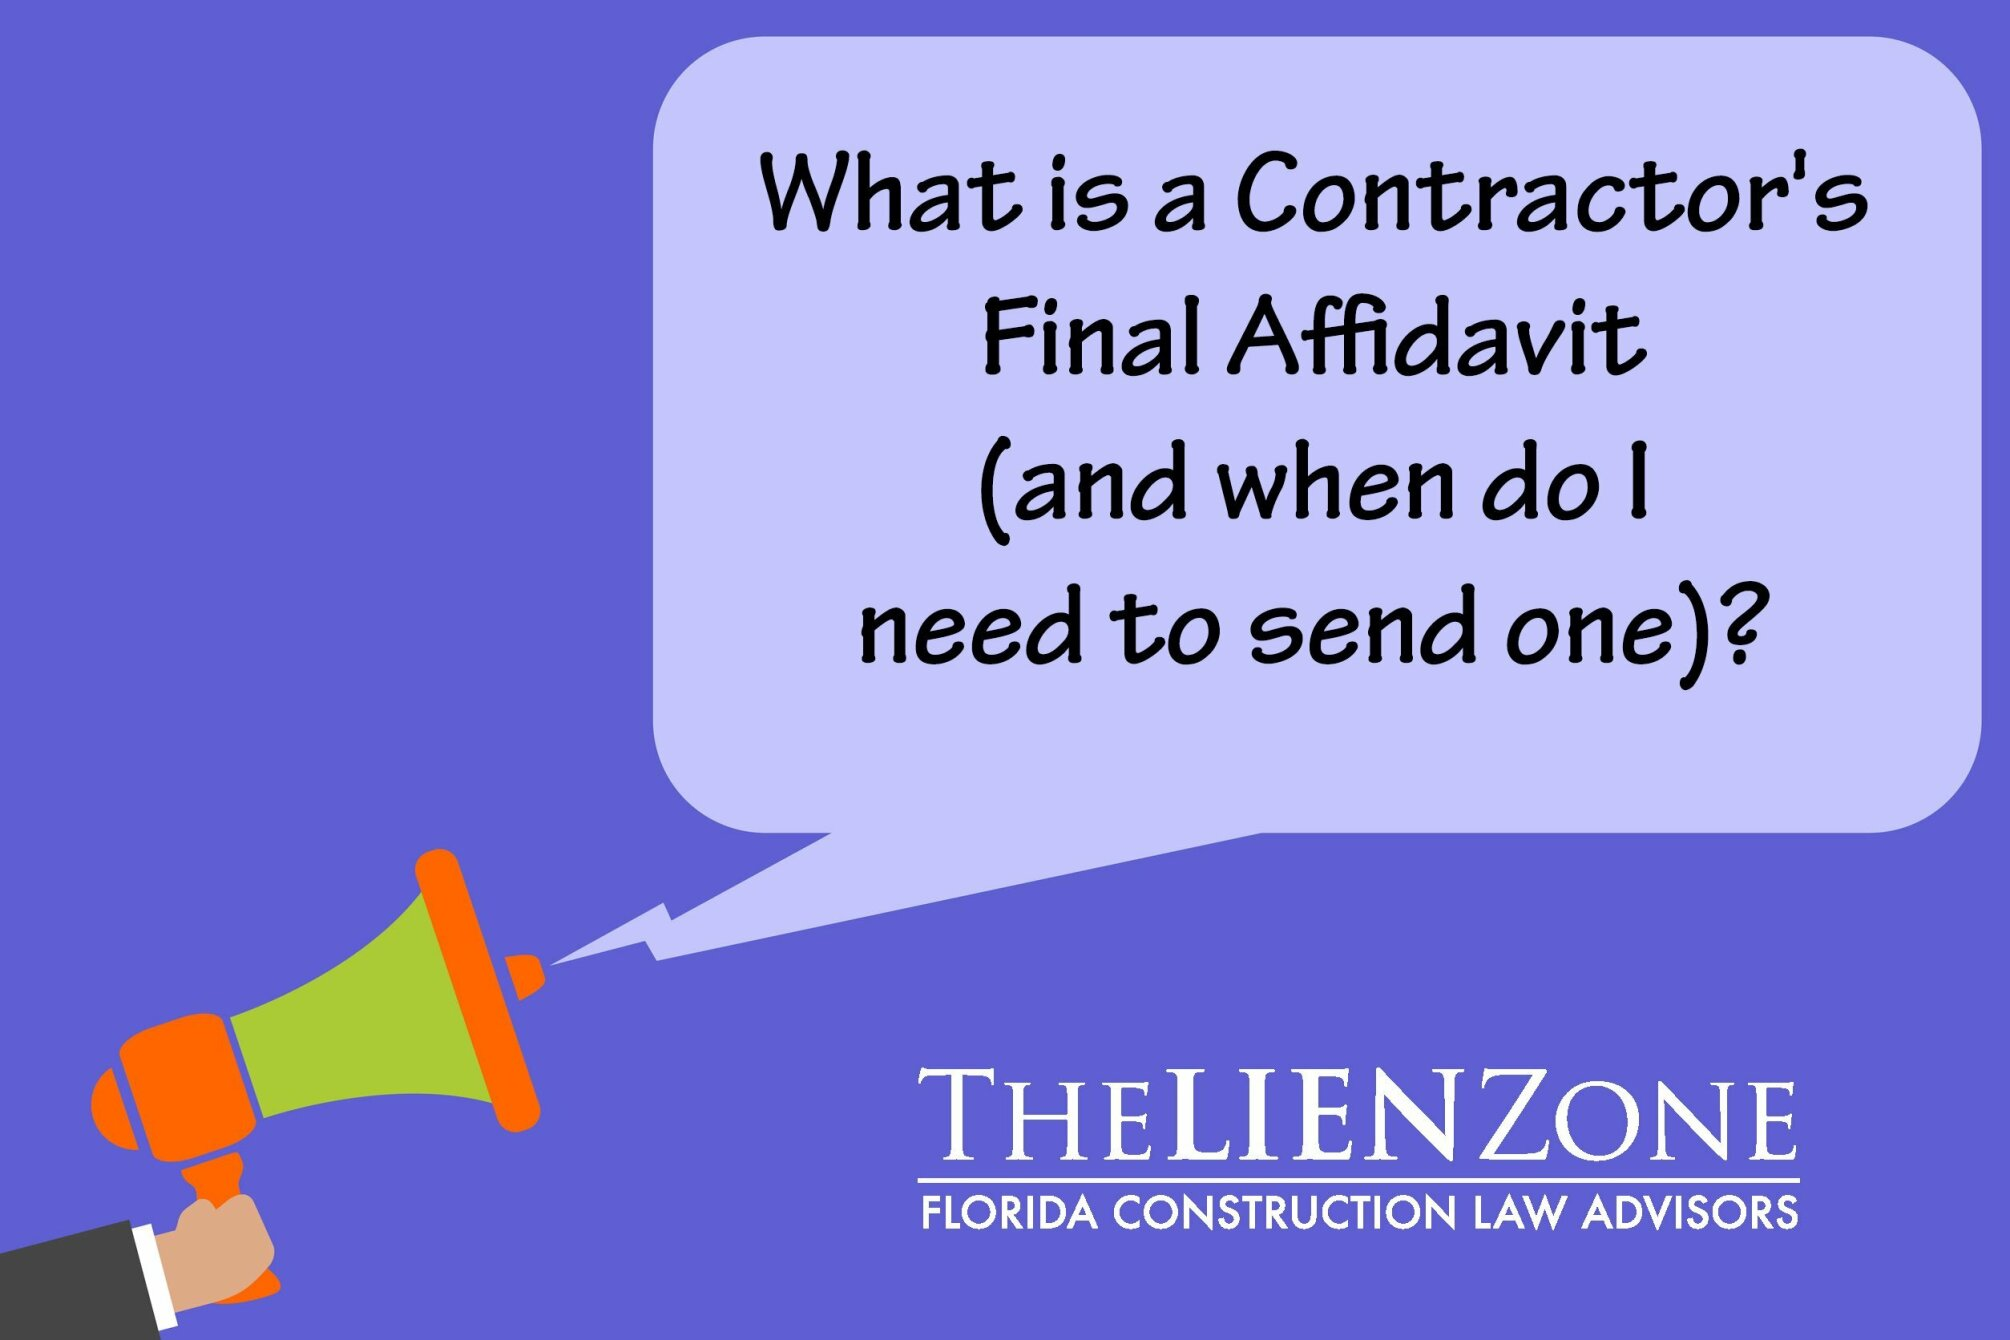 What is a Contractor's Final Affidavit (and when do I need to send one)?